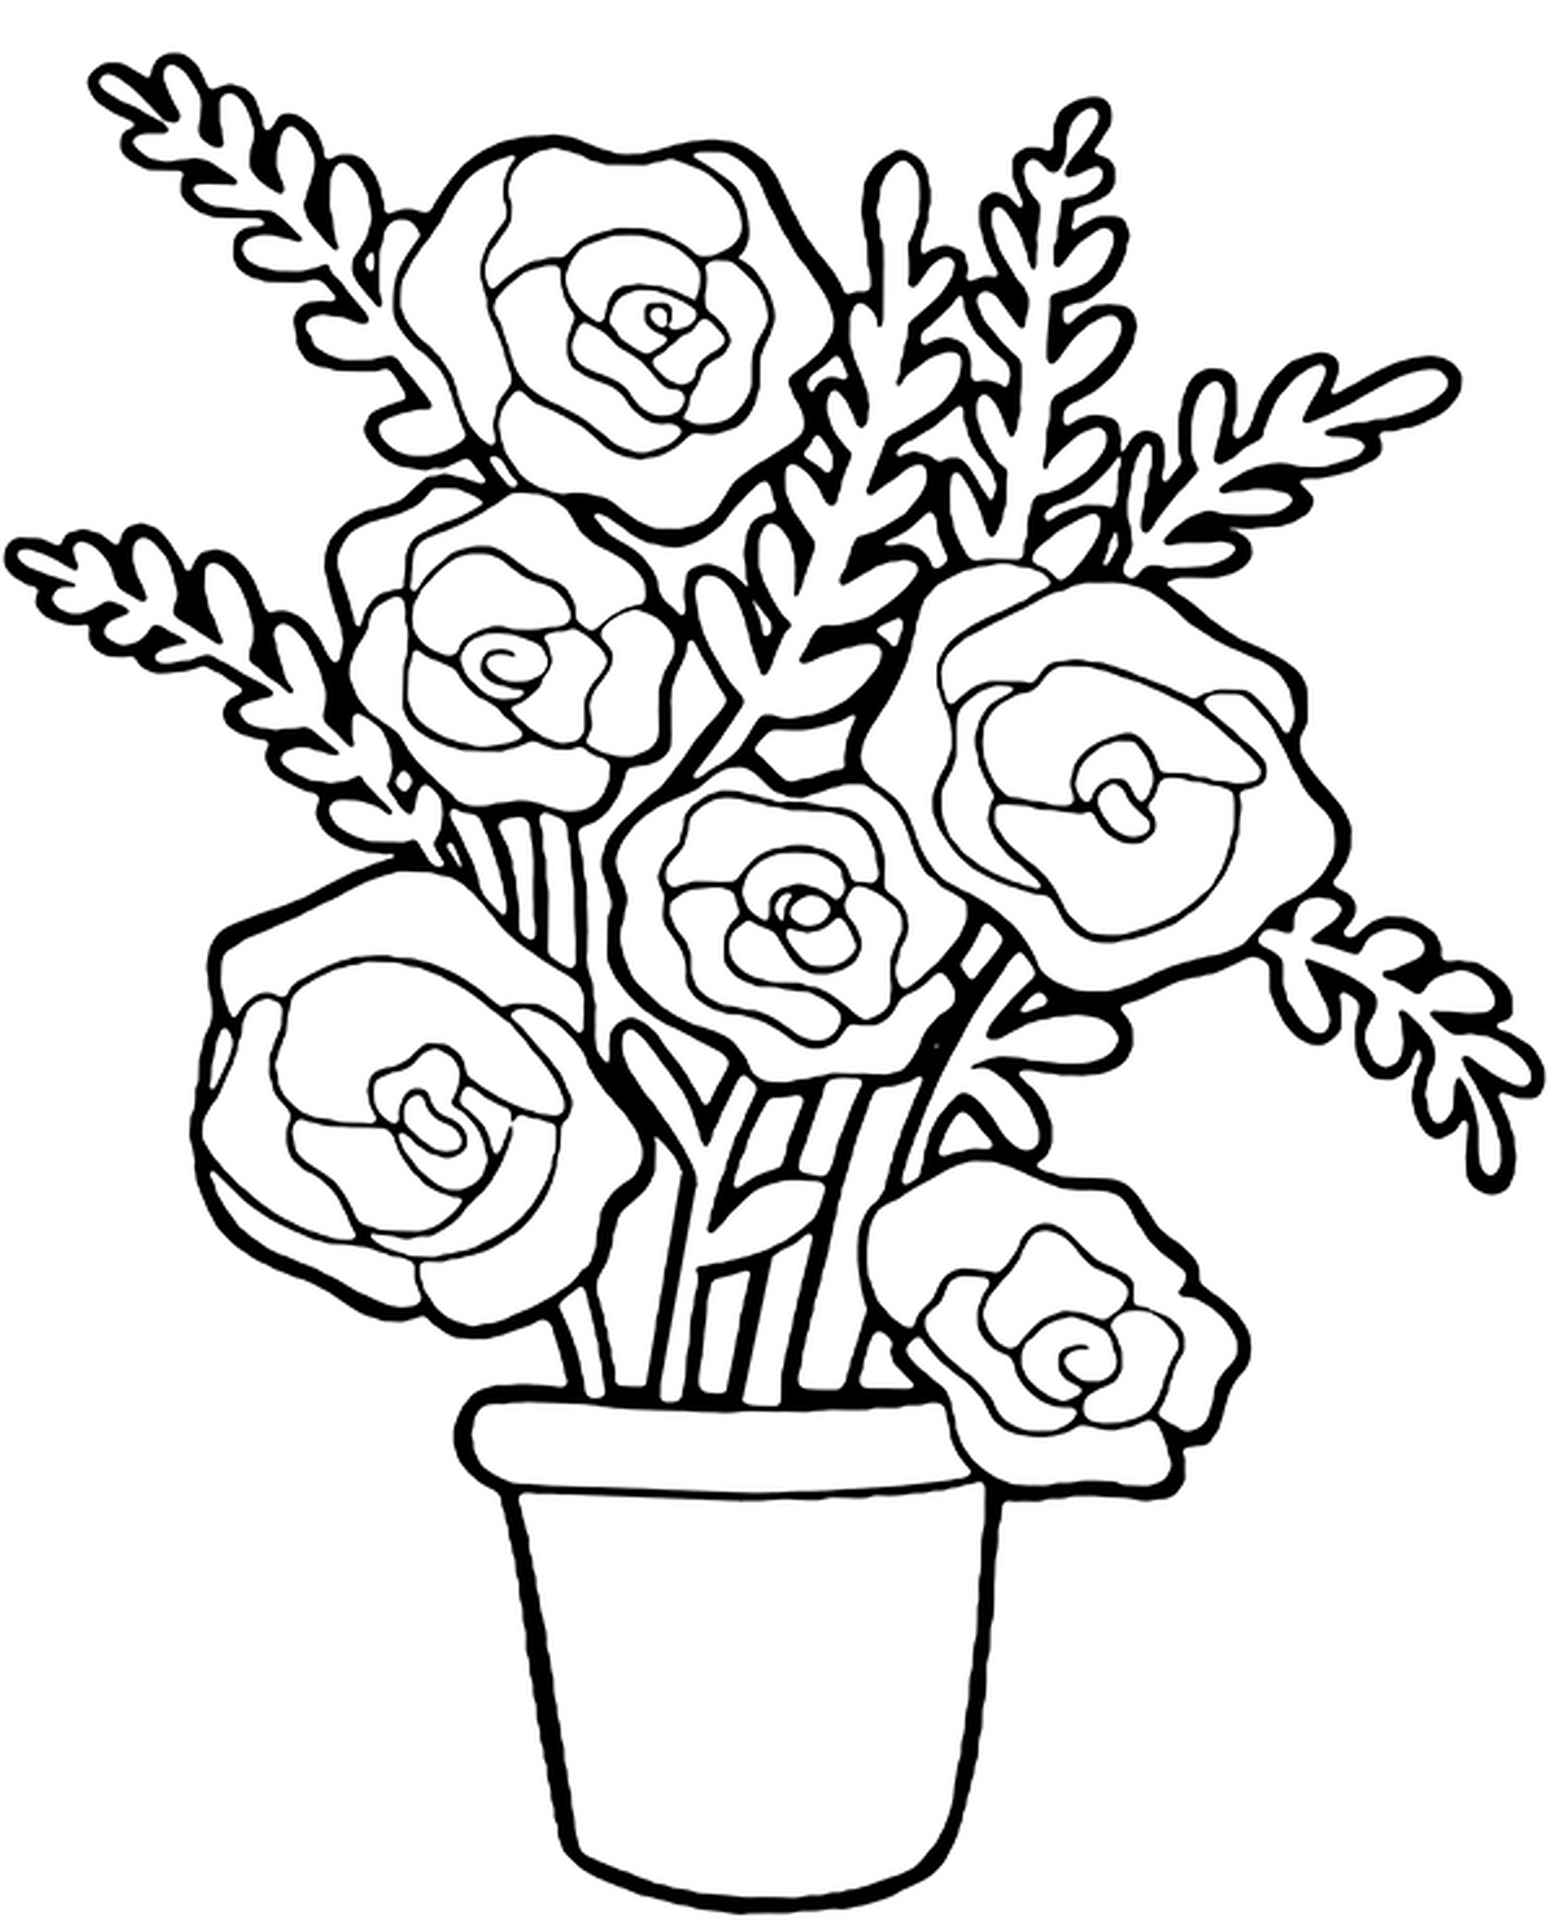 Coloring Sheet White Roses In A Pot